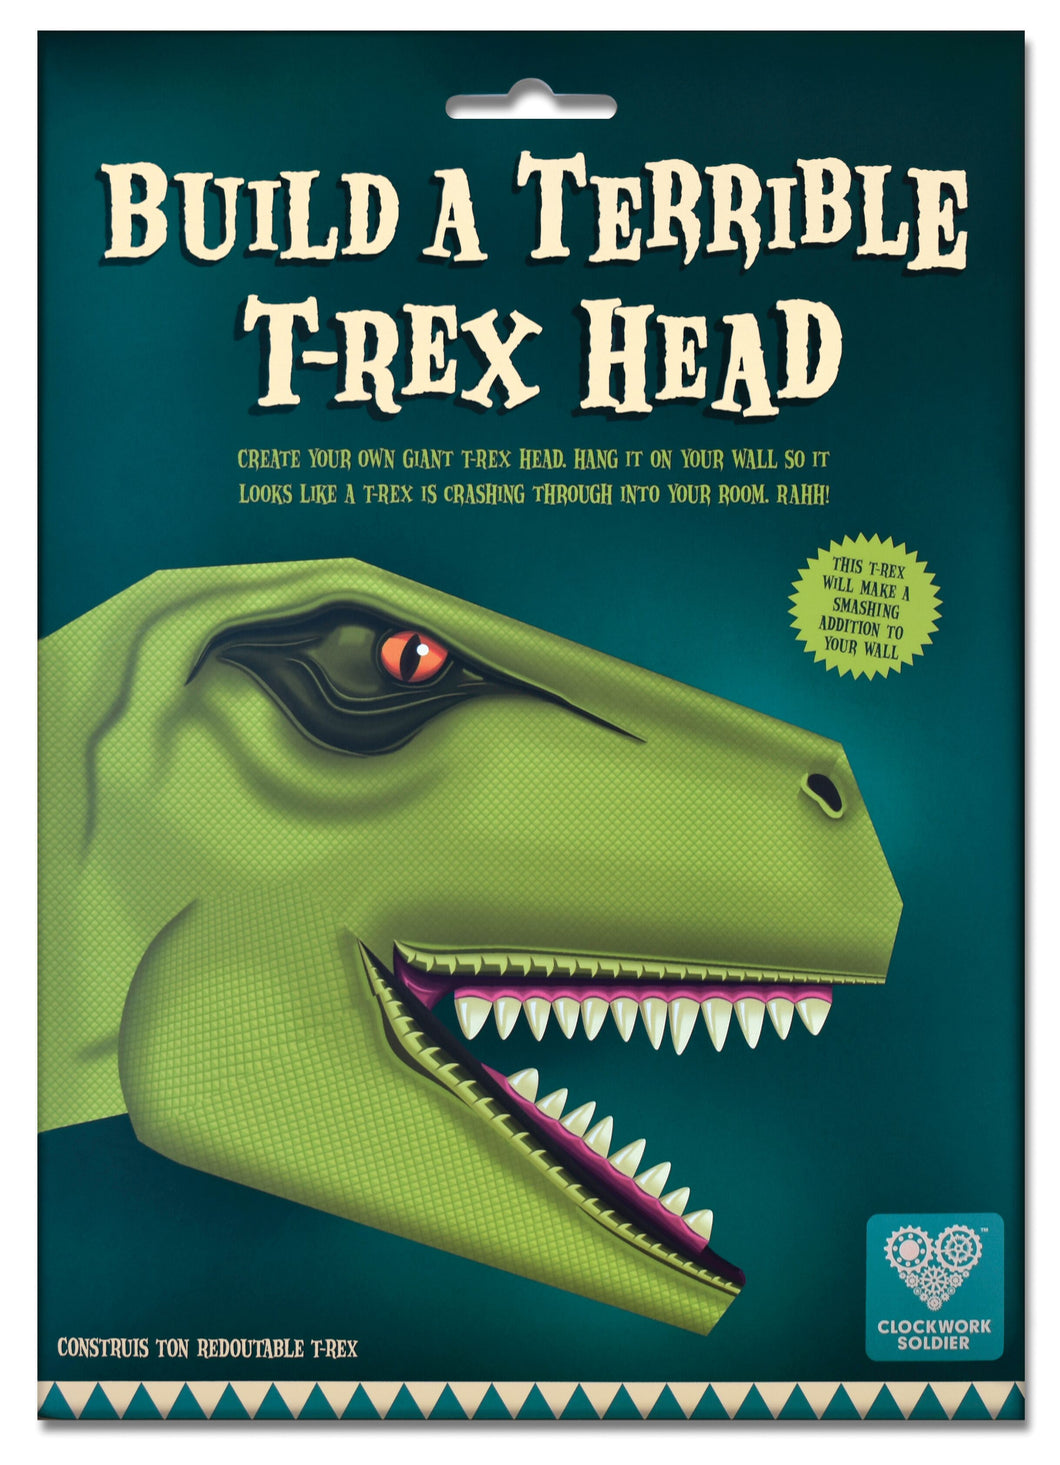 Clockwork Soldier create your own terrible T-Rex head